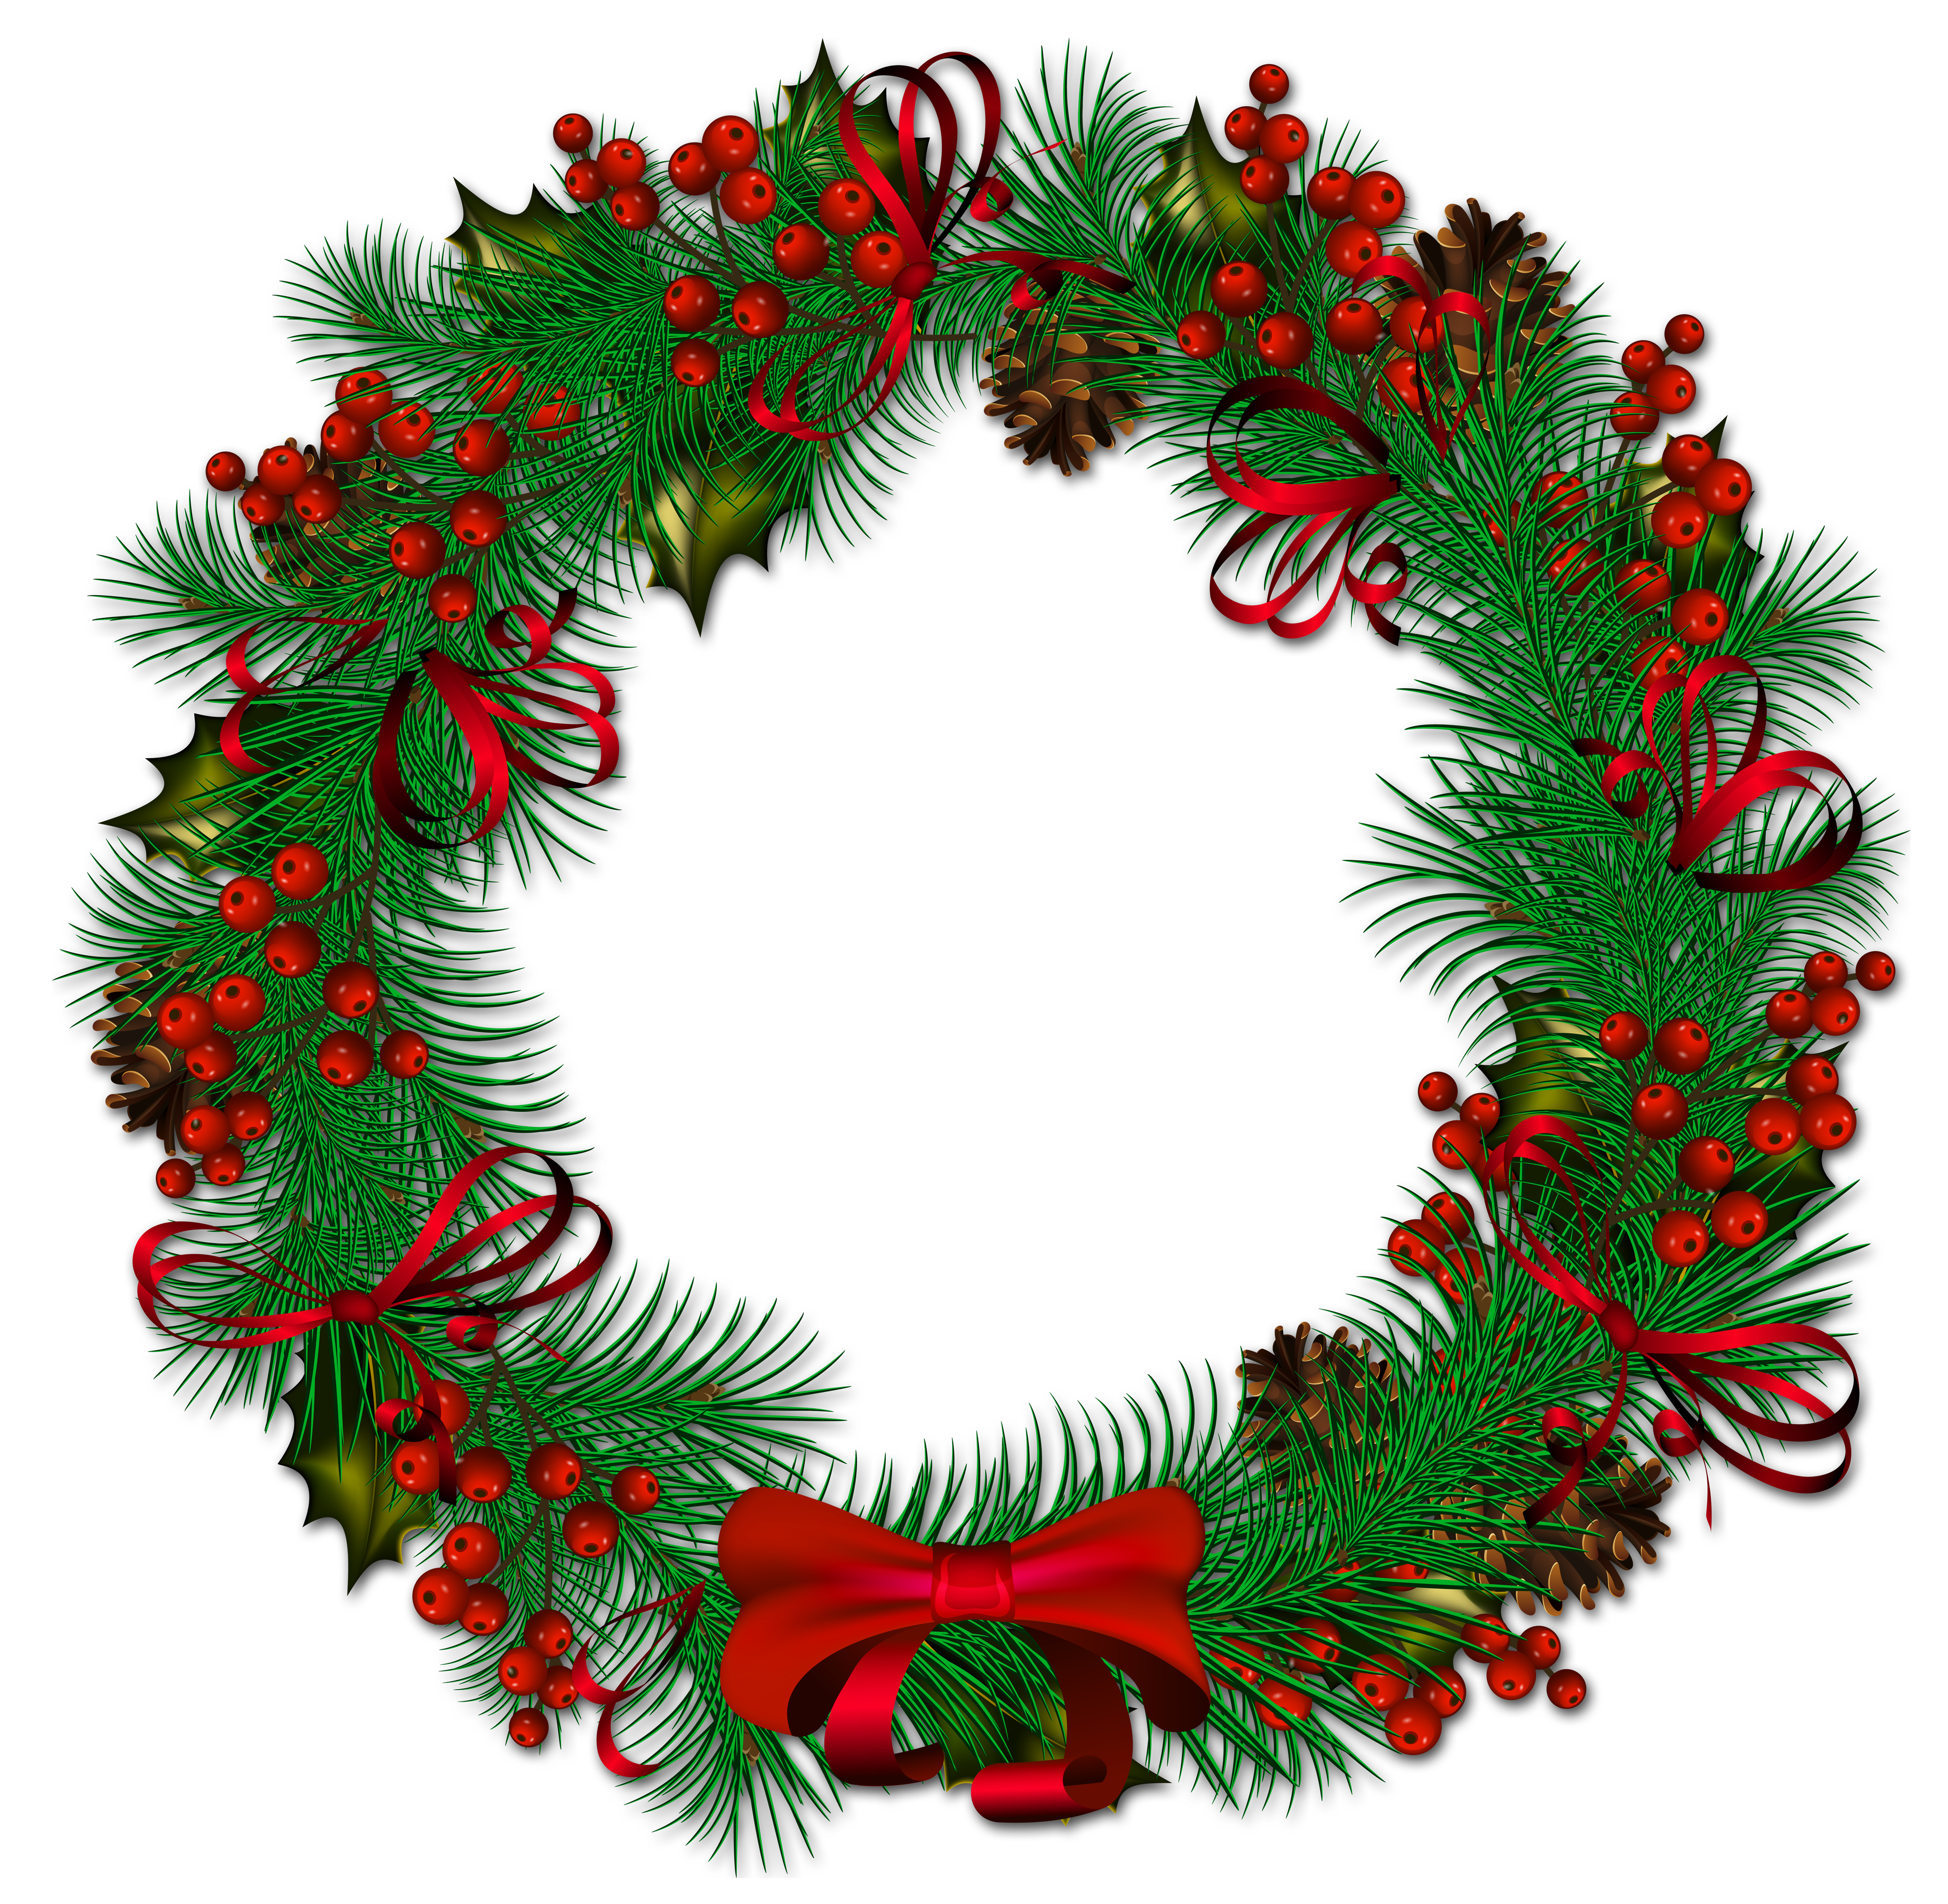 Free christmas wreath clipart image freeuse Transparent Christmas Pinecone Wreath with Red Ribbon Clipart ... image freeuse